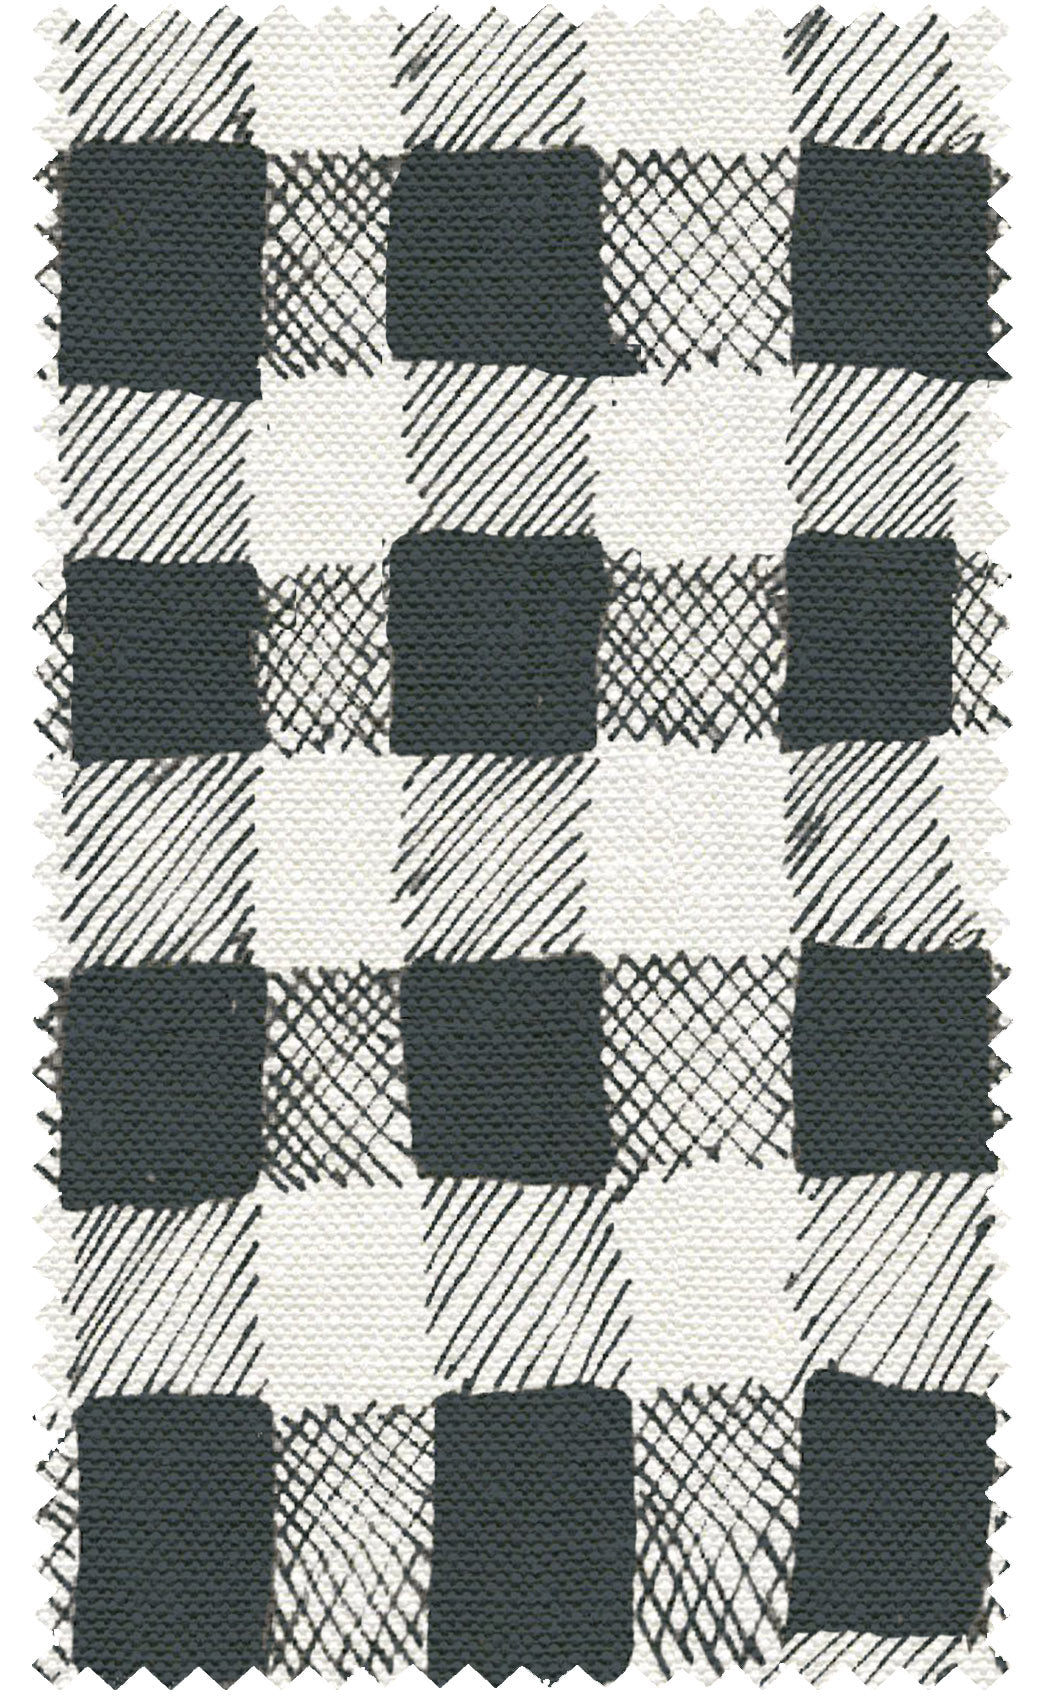 10 Holland Street Gingham Print black and white cushion linen upholstery